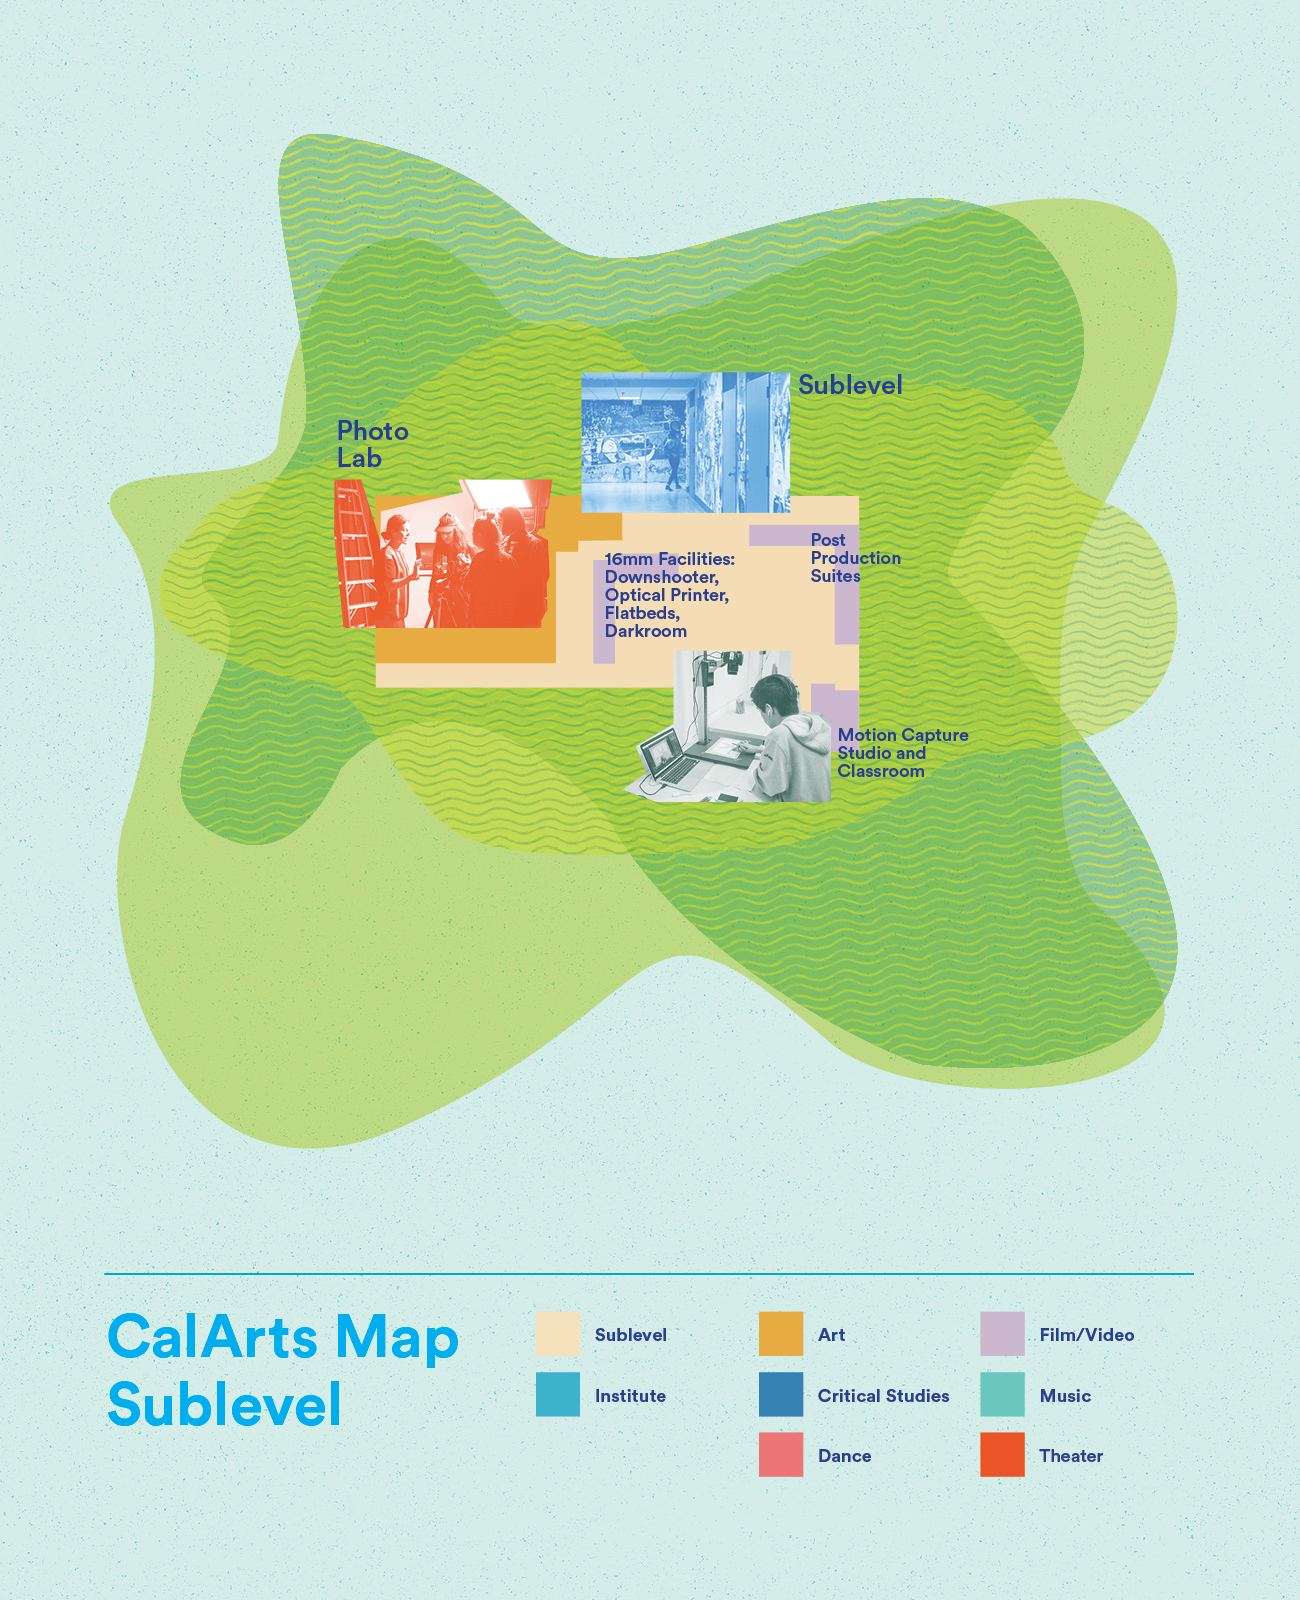 Map of the CalArts Sublevel